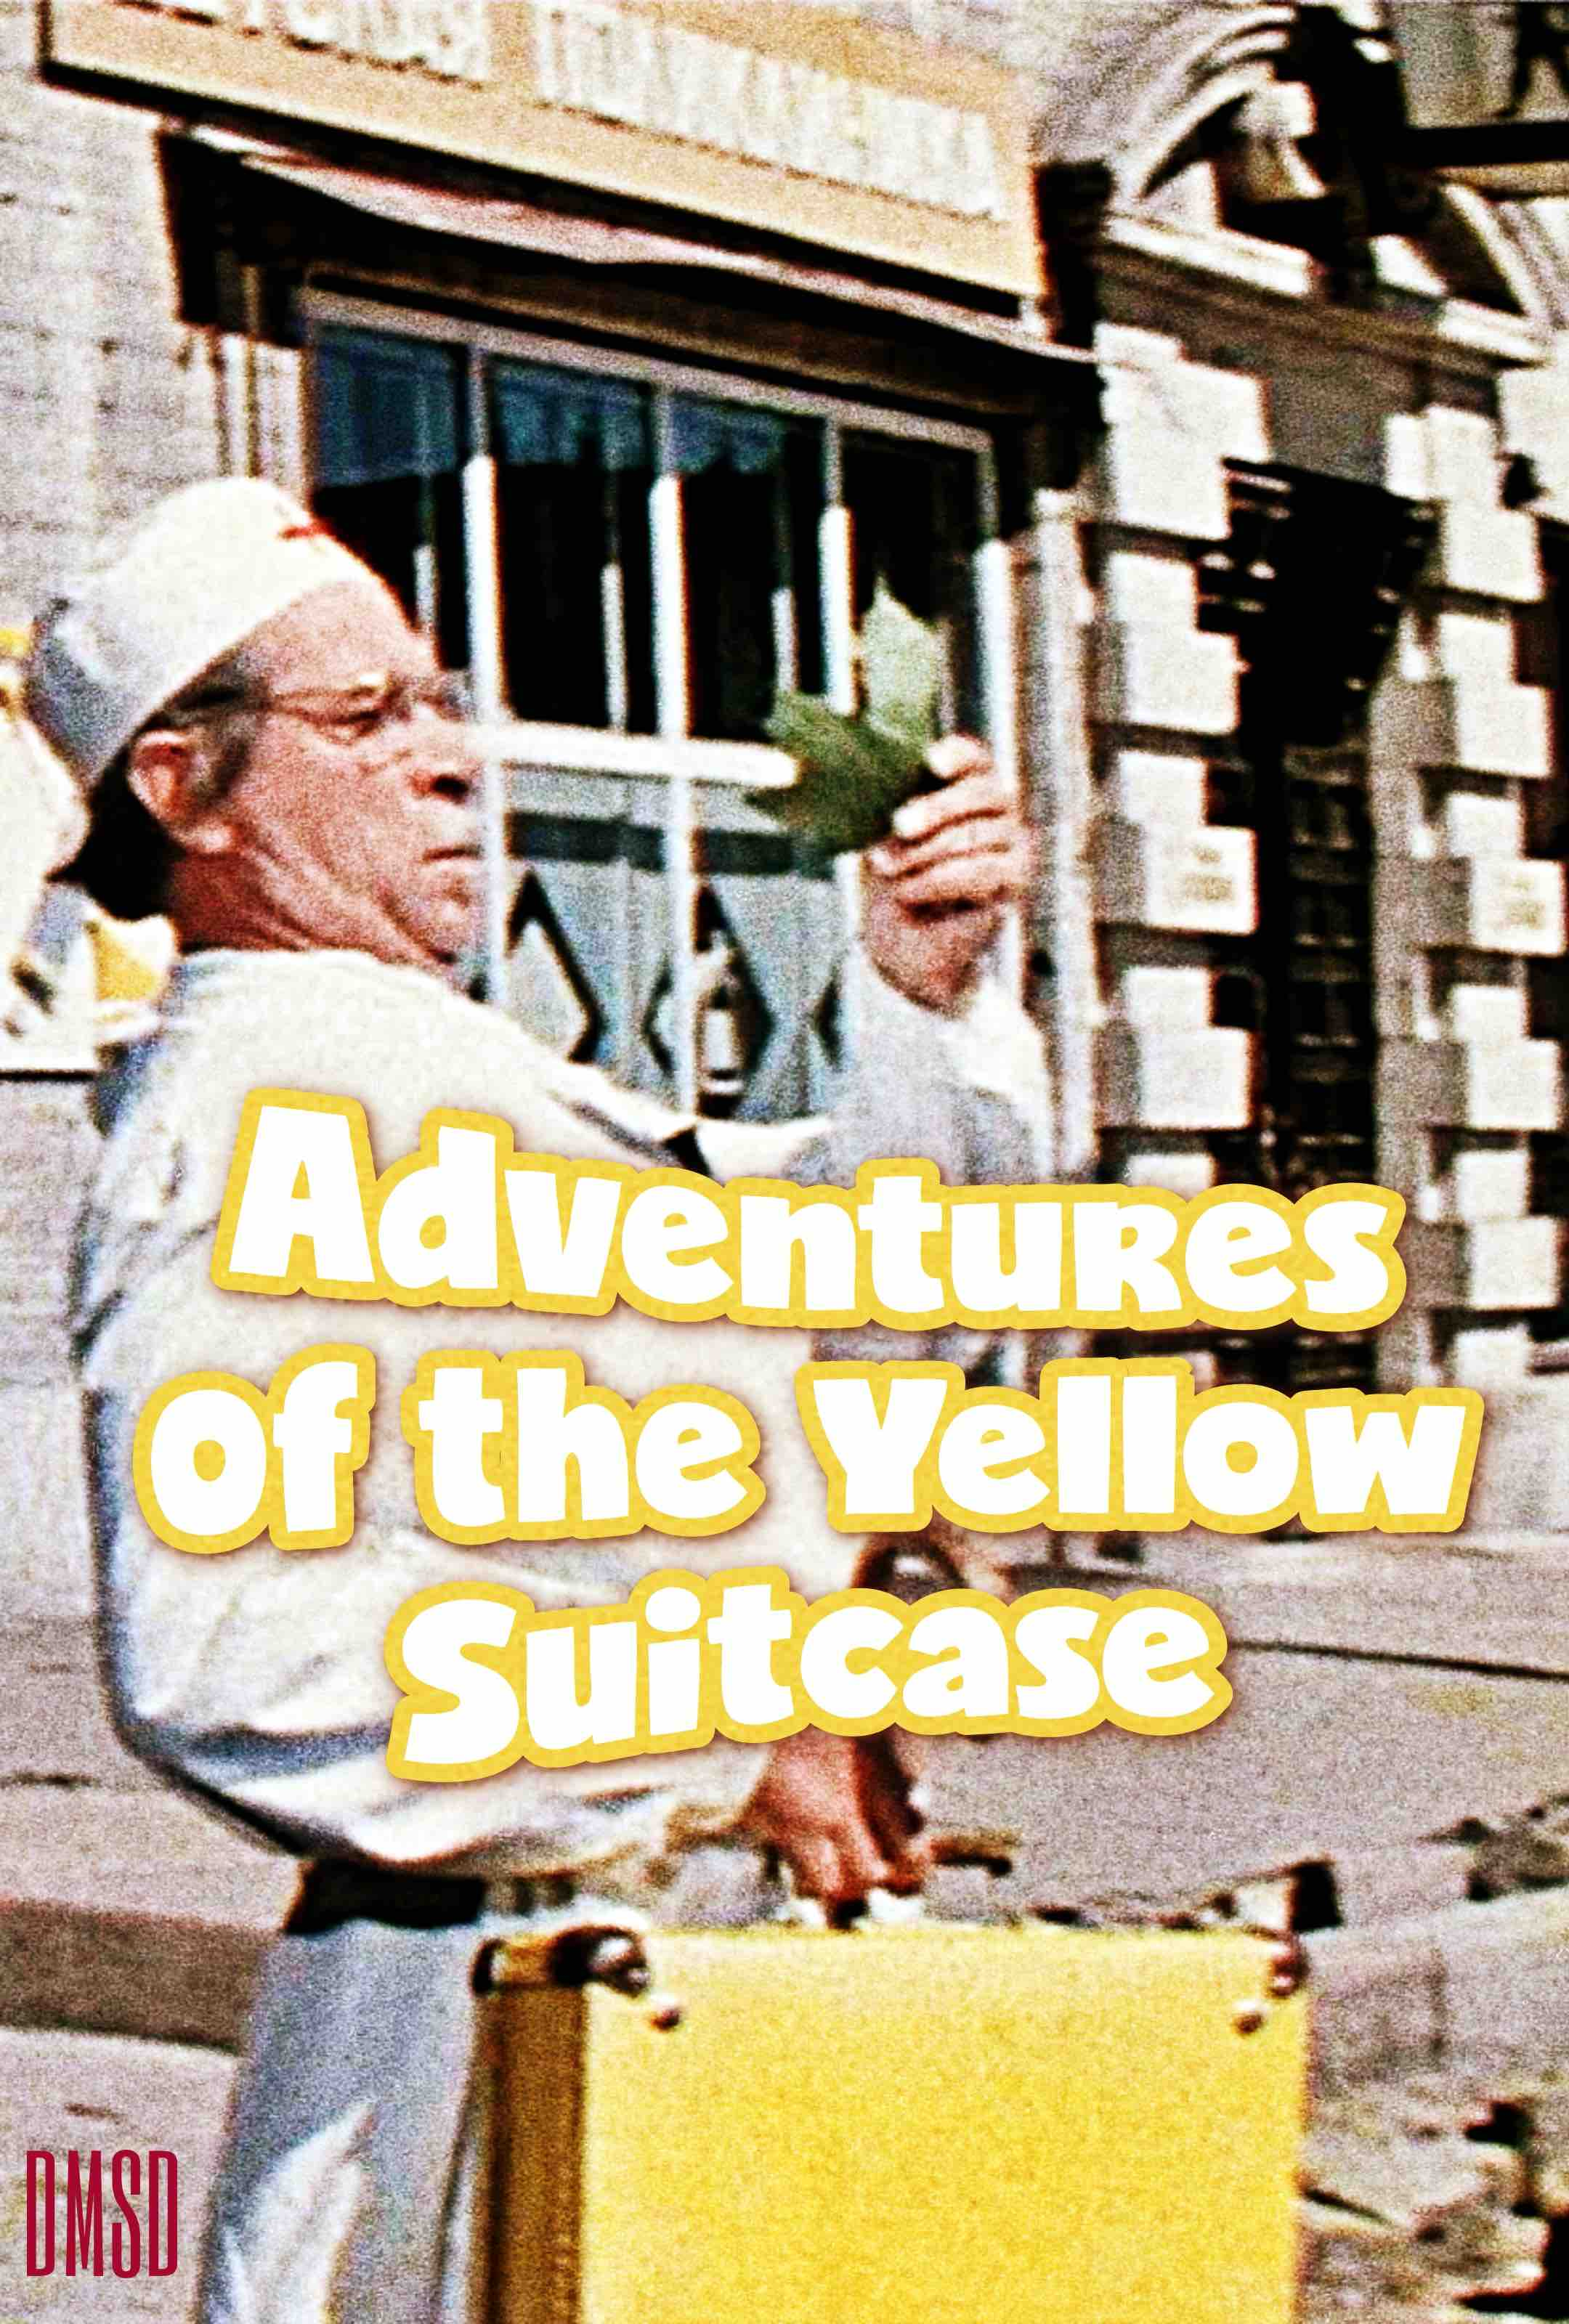 Adventures of the Yellow Suitcase [1970]